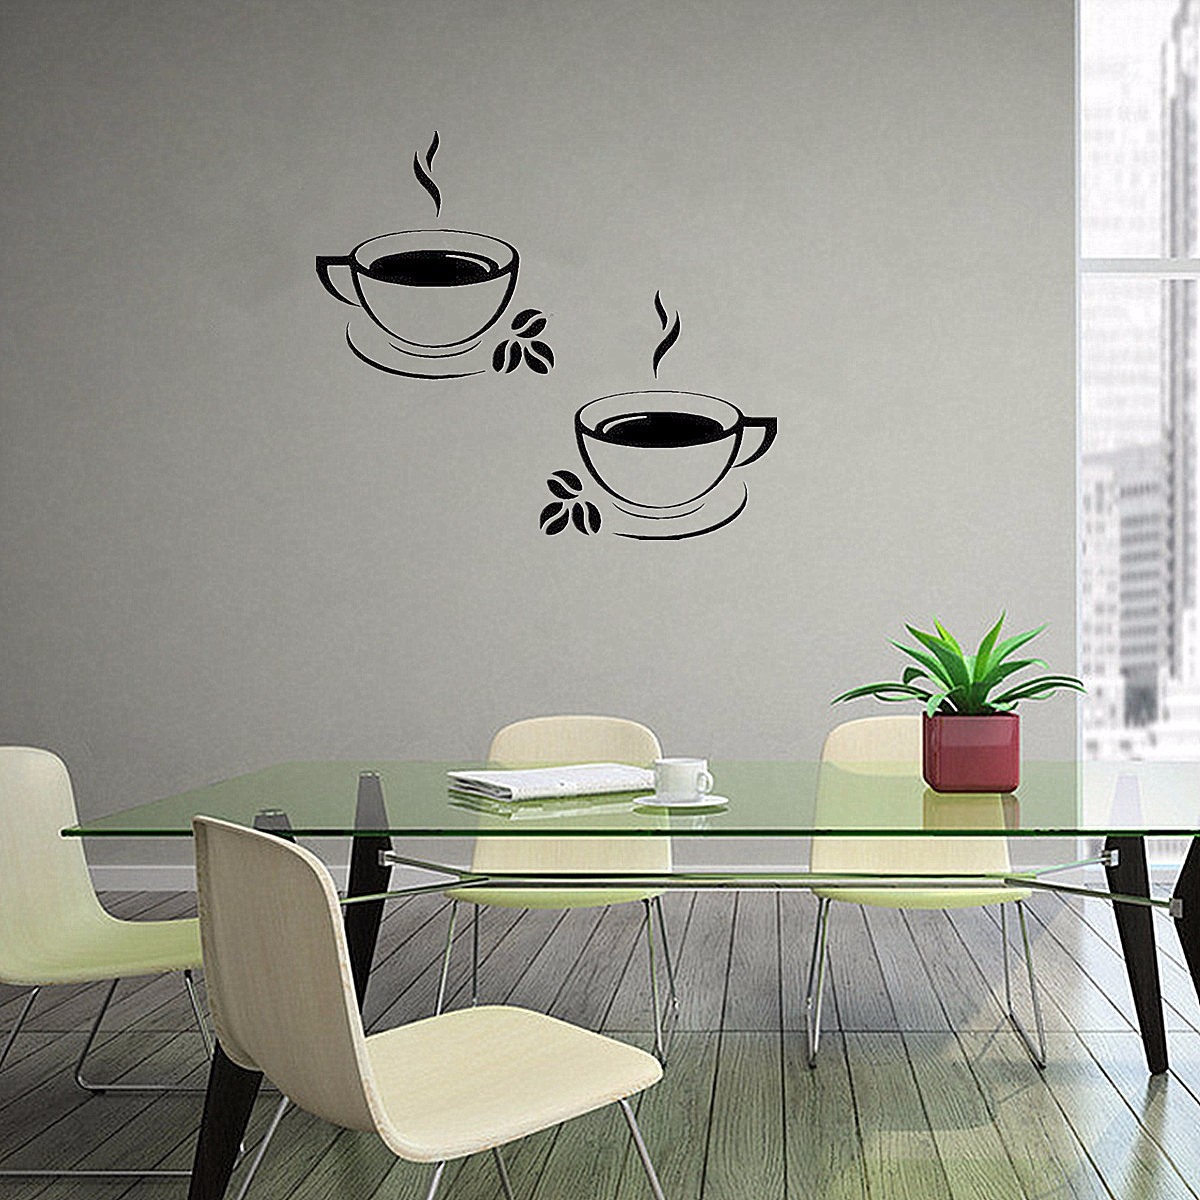 2 Coffee Cups Kitchen Wall Stickers wall decoration Art Vinyl Decal Restaurant Pub Cafe Home Decor Waterproof